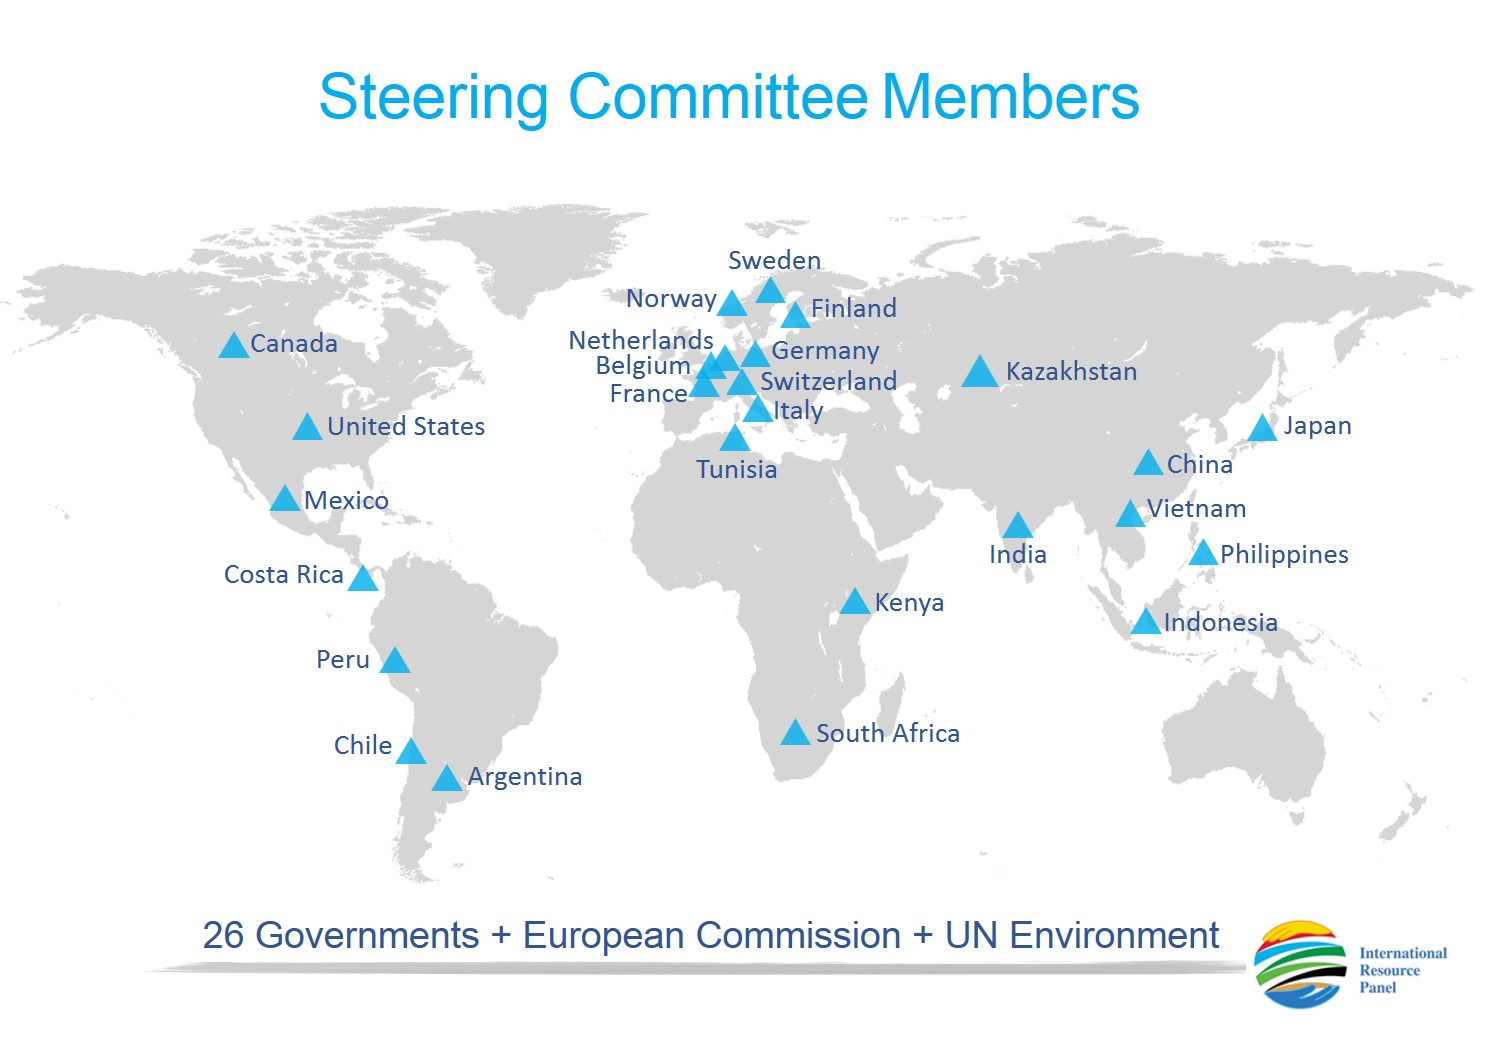 map_of_irp_steering_committee.jpg